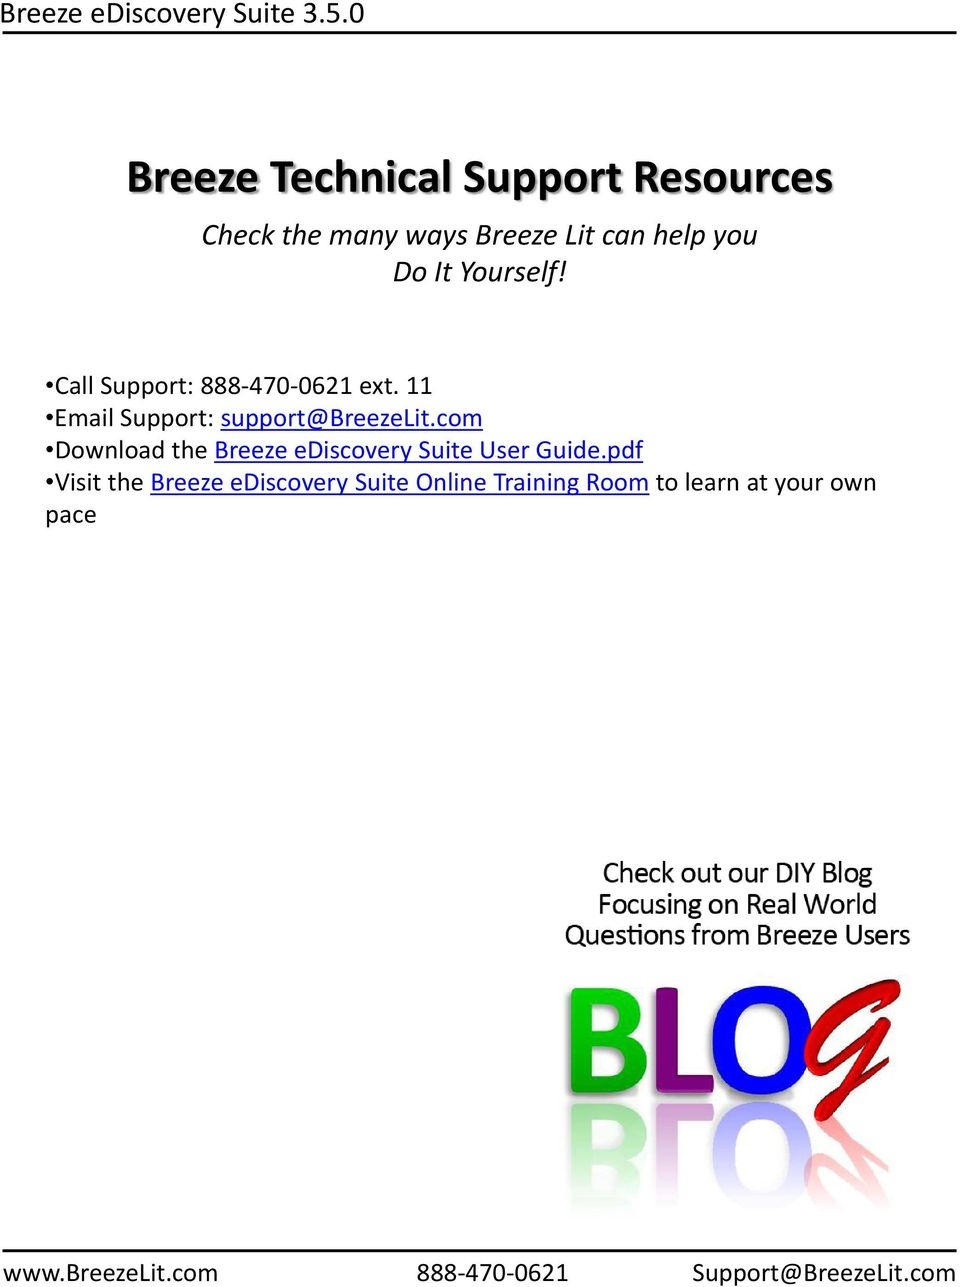 11 Email Support: support@breezelit.